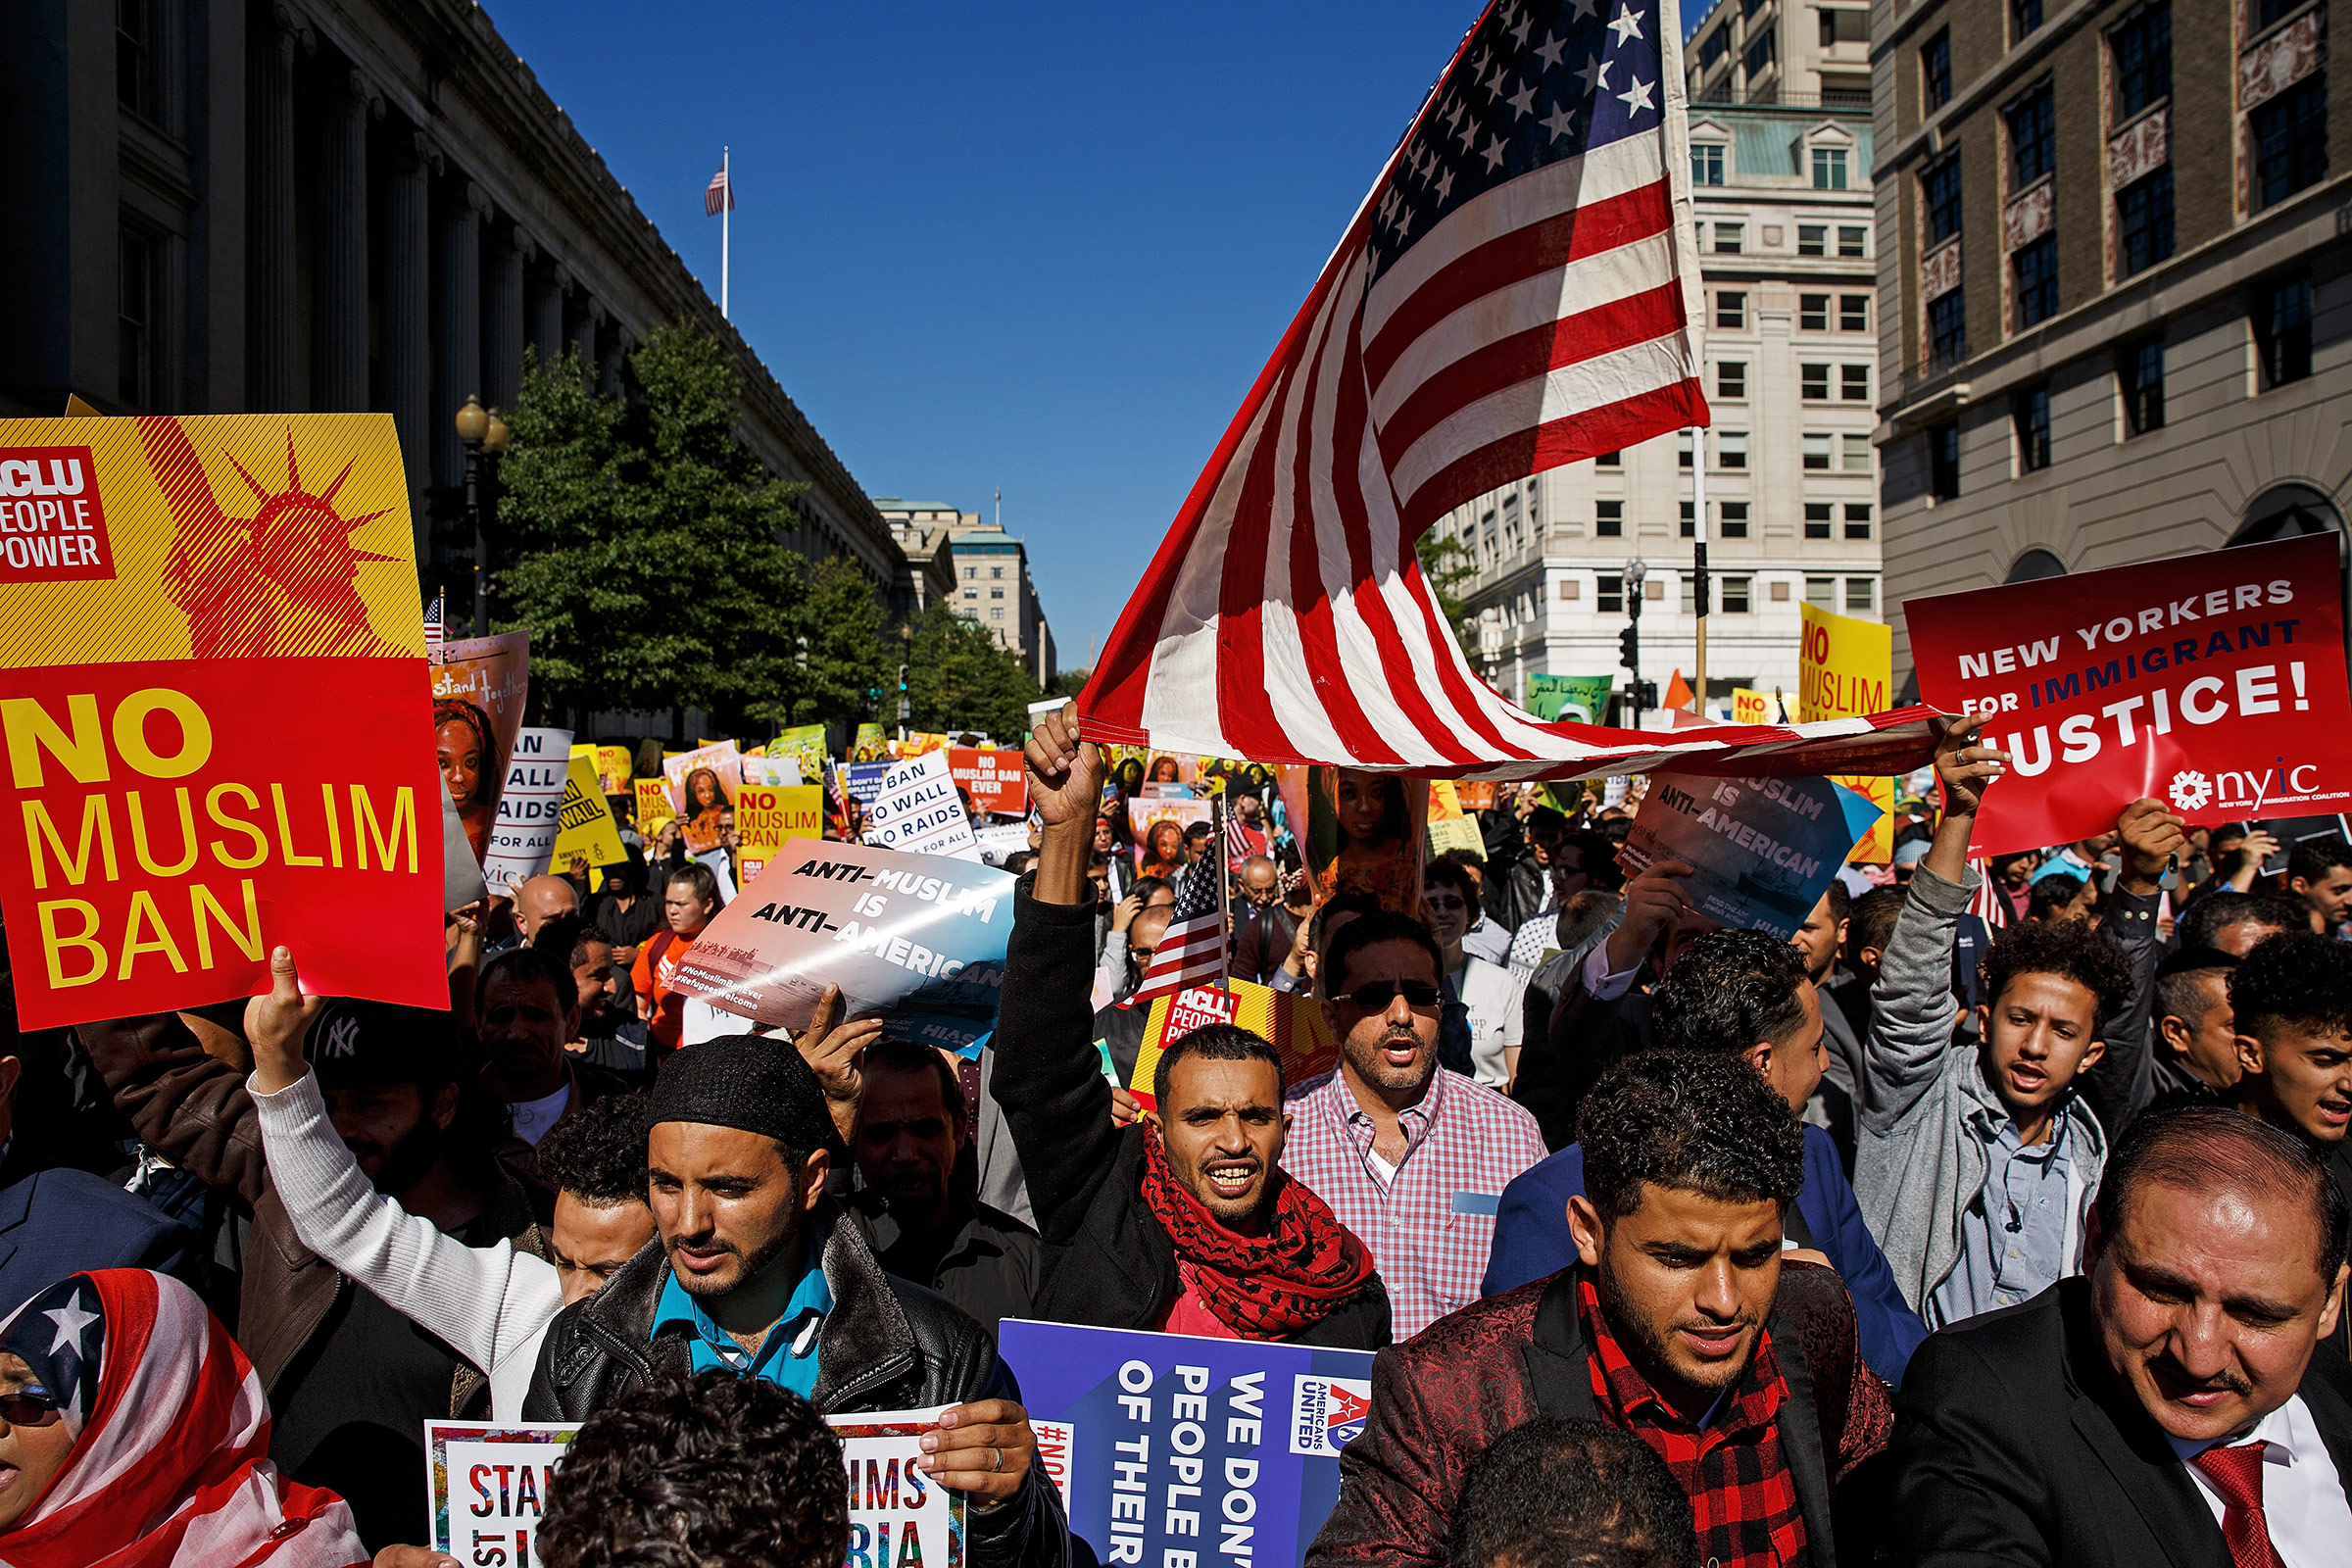 Protesters in Washington, D.C., march against Trump's attempts to restrict travel from predominantly Muslim countries in October 2017